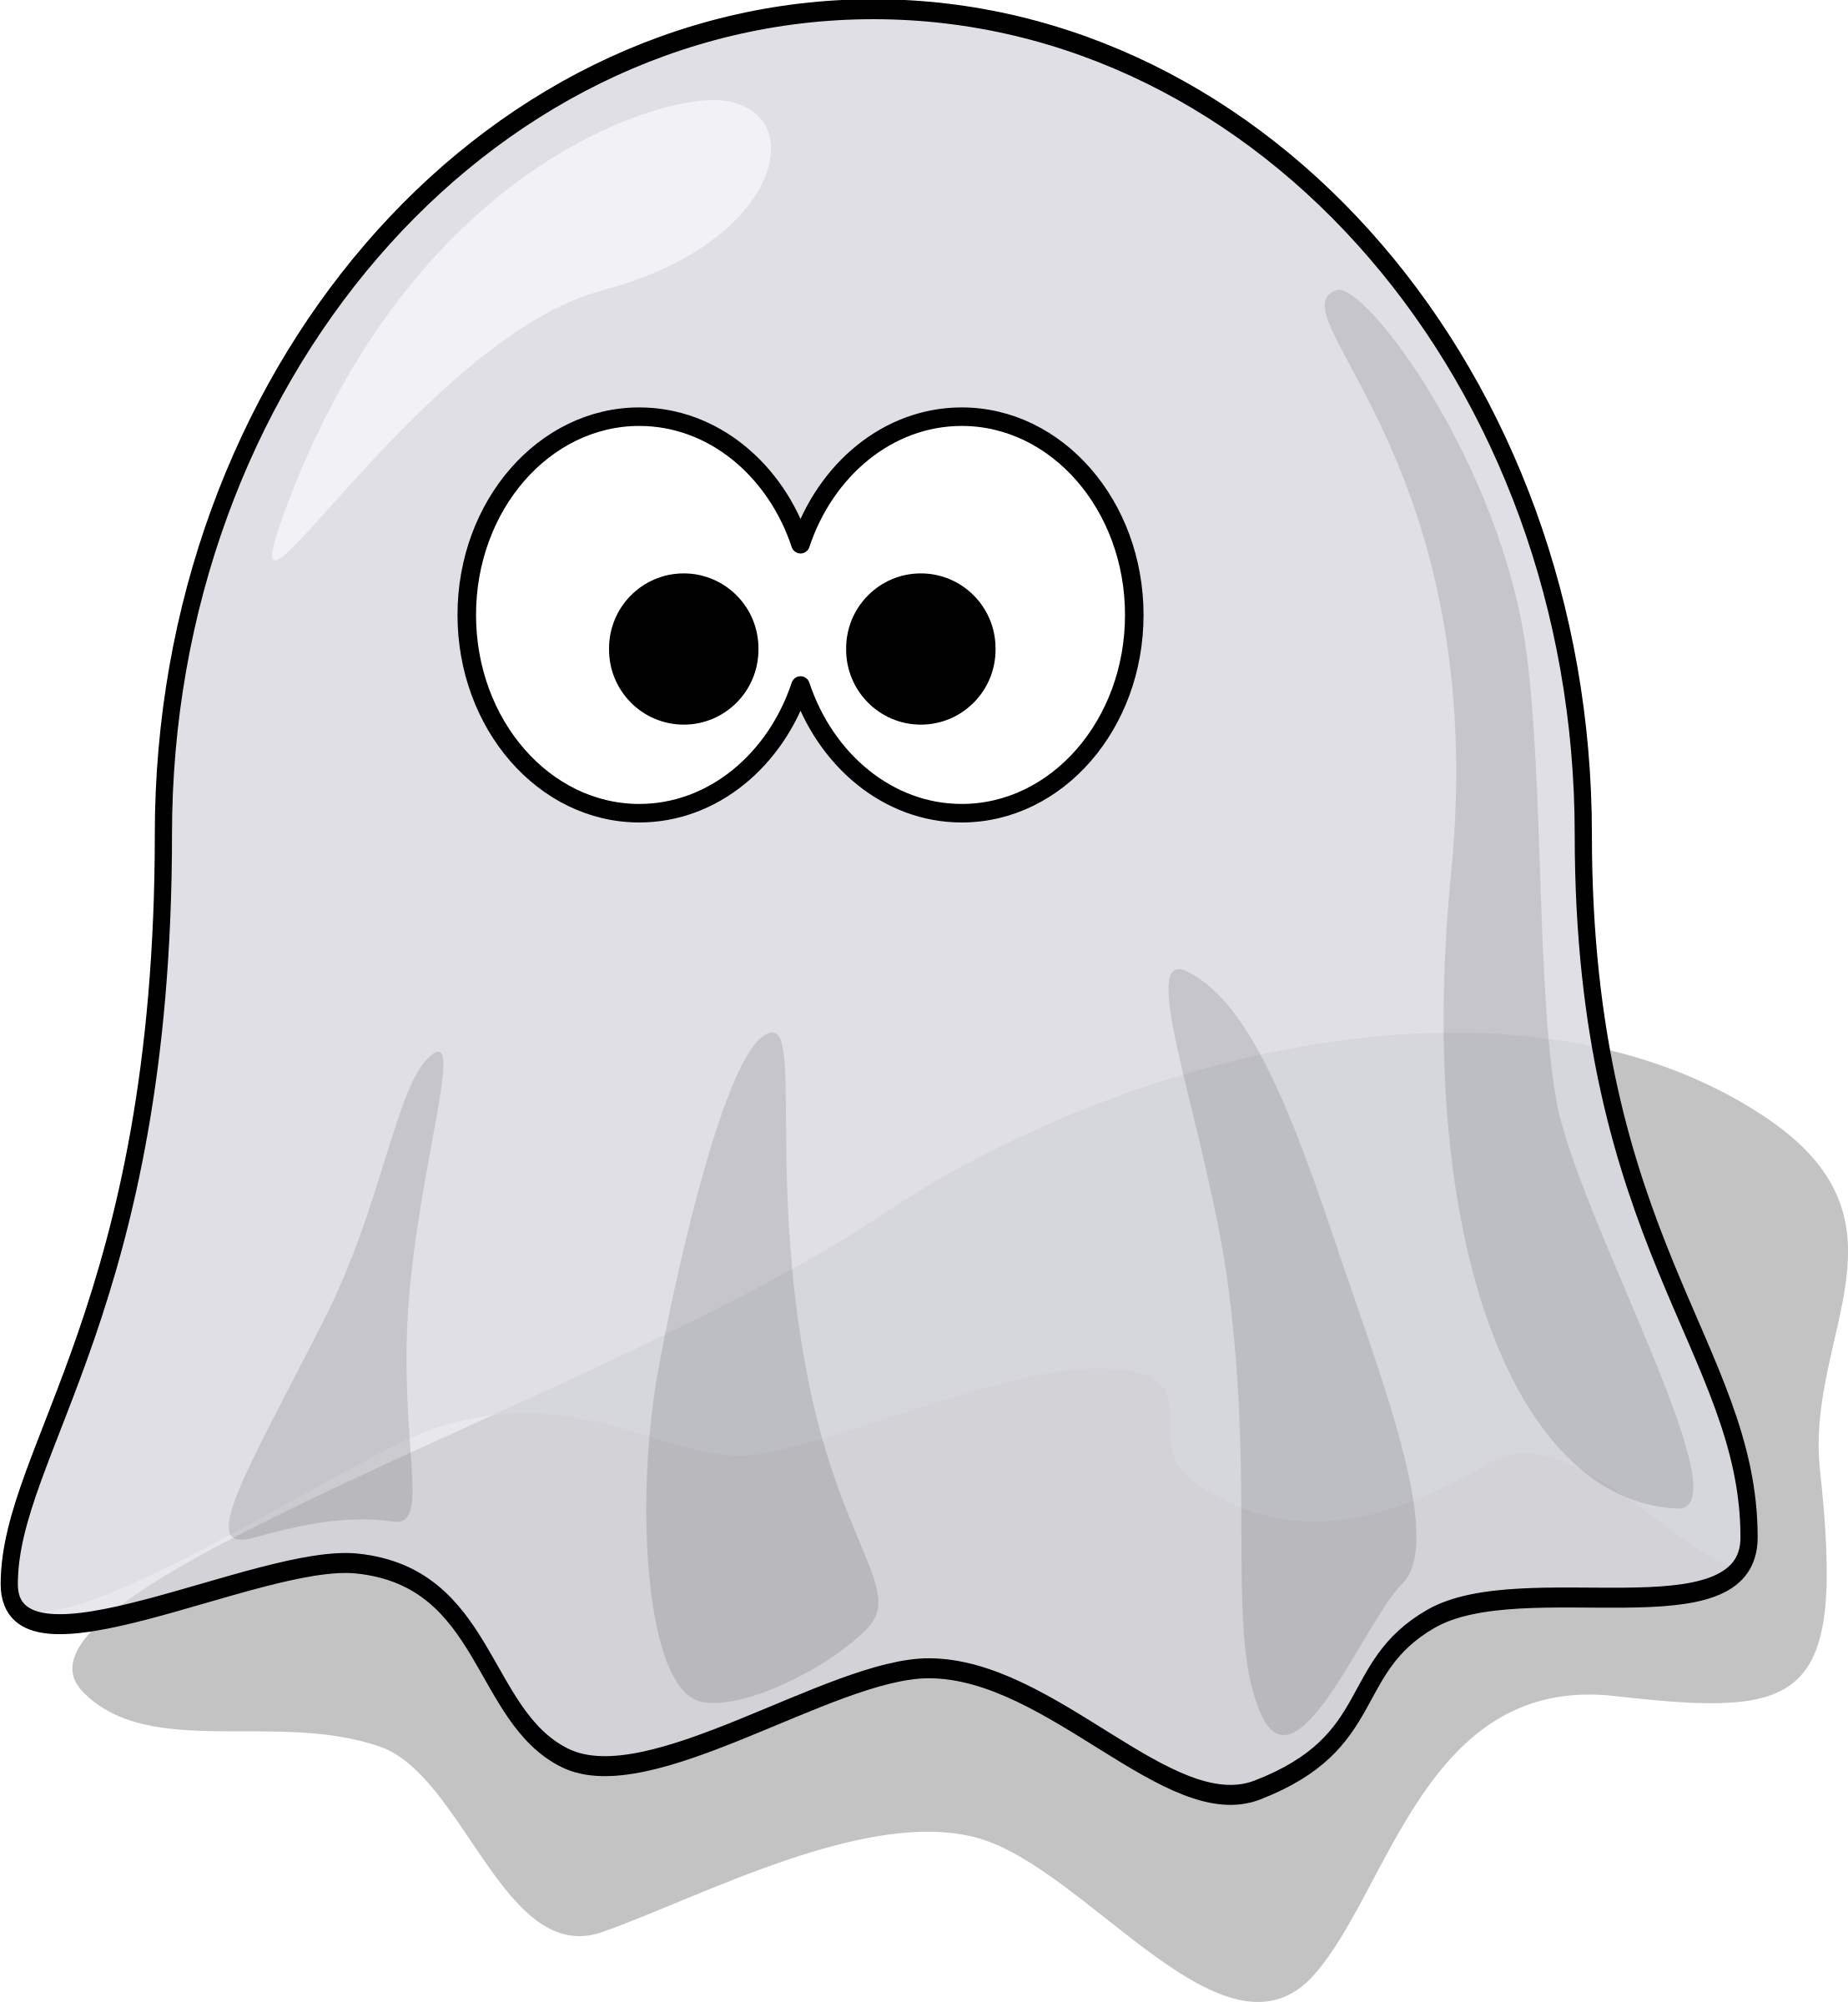 106-Cartoon-ghost.png